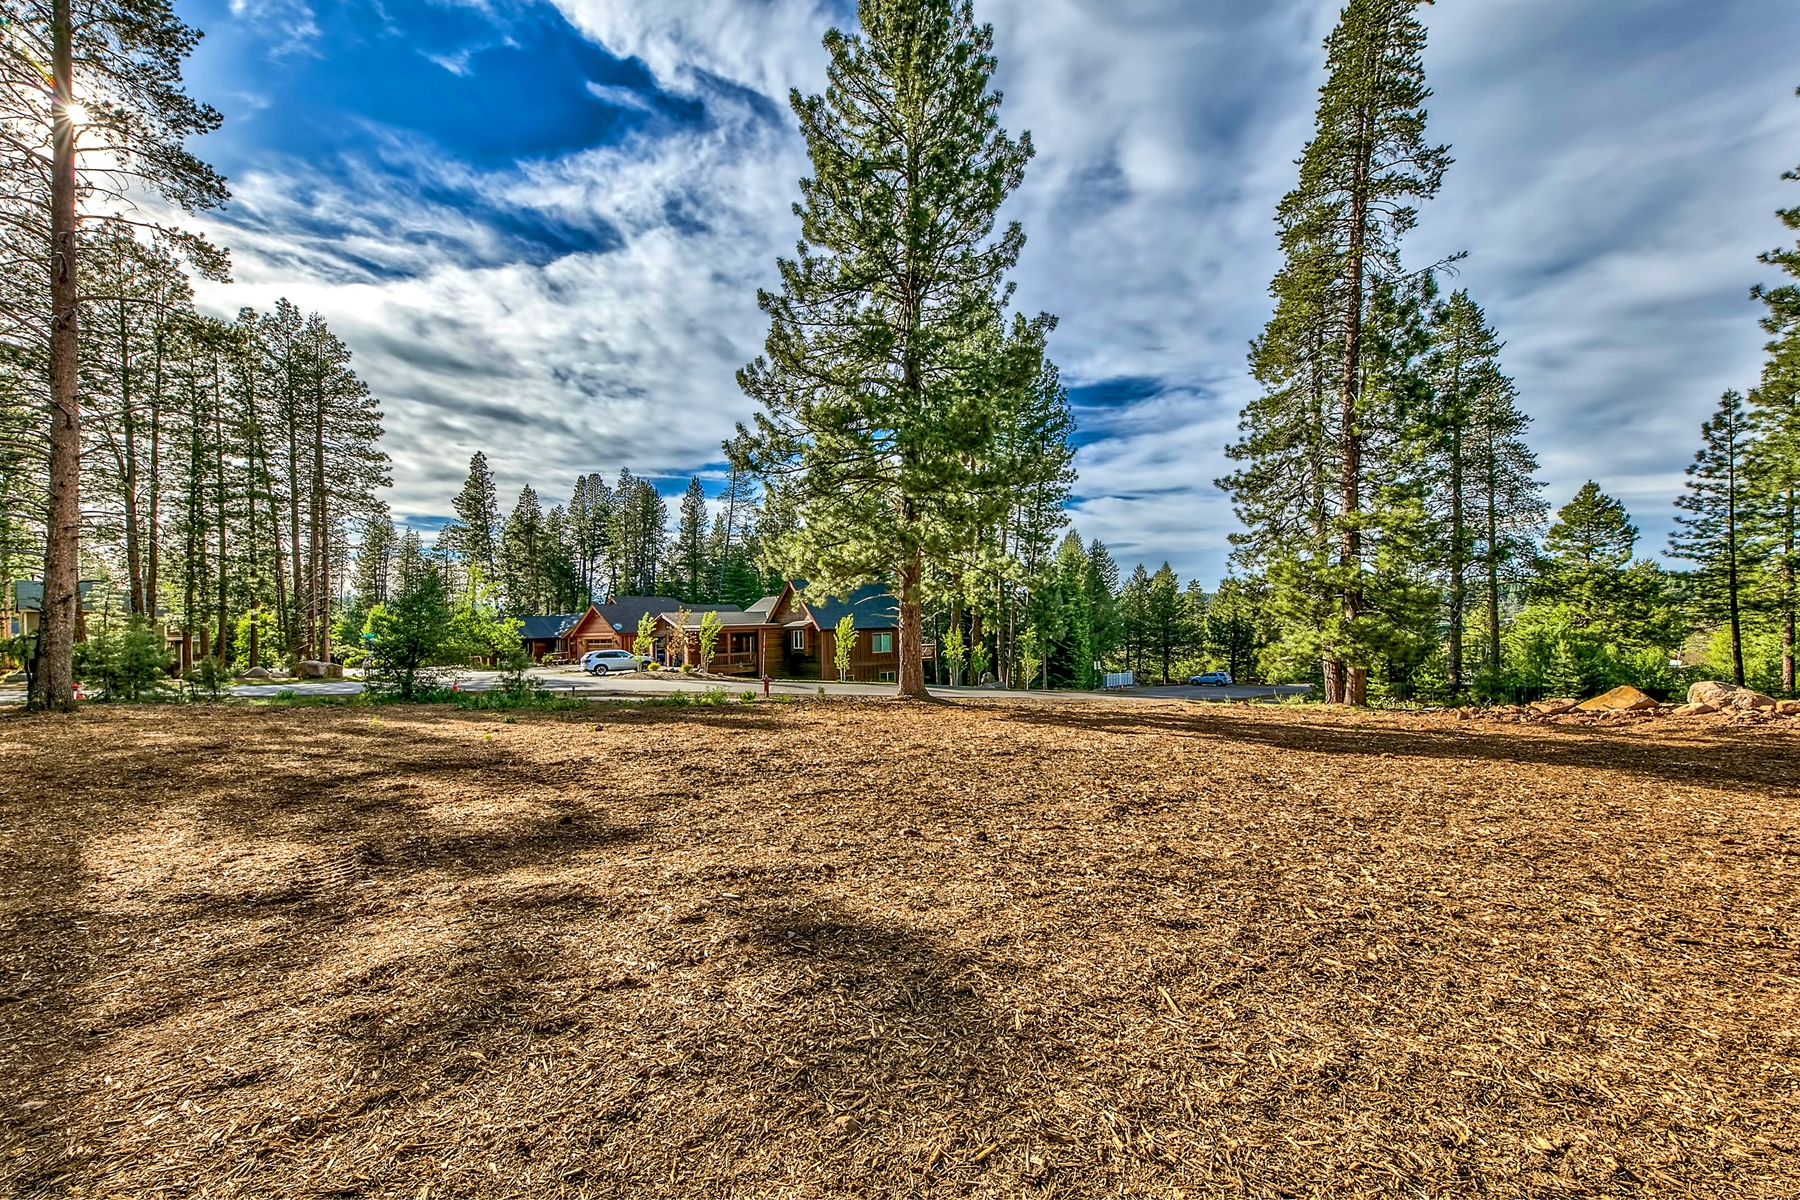 Terreno por un Venta en 000 Winter Creek Loop, Truckee, CA 96161 000 Winter Creek Loop Truckee, California 96161 Estados Unidos